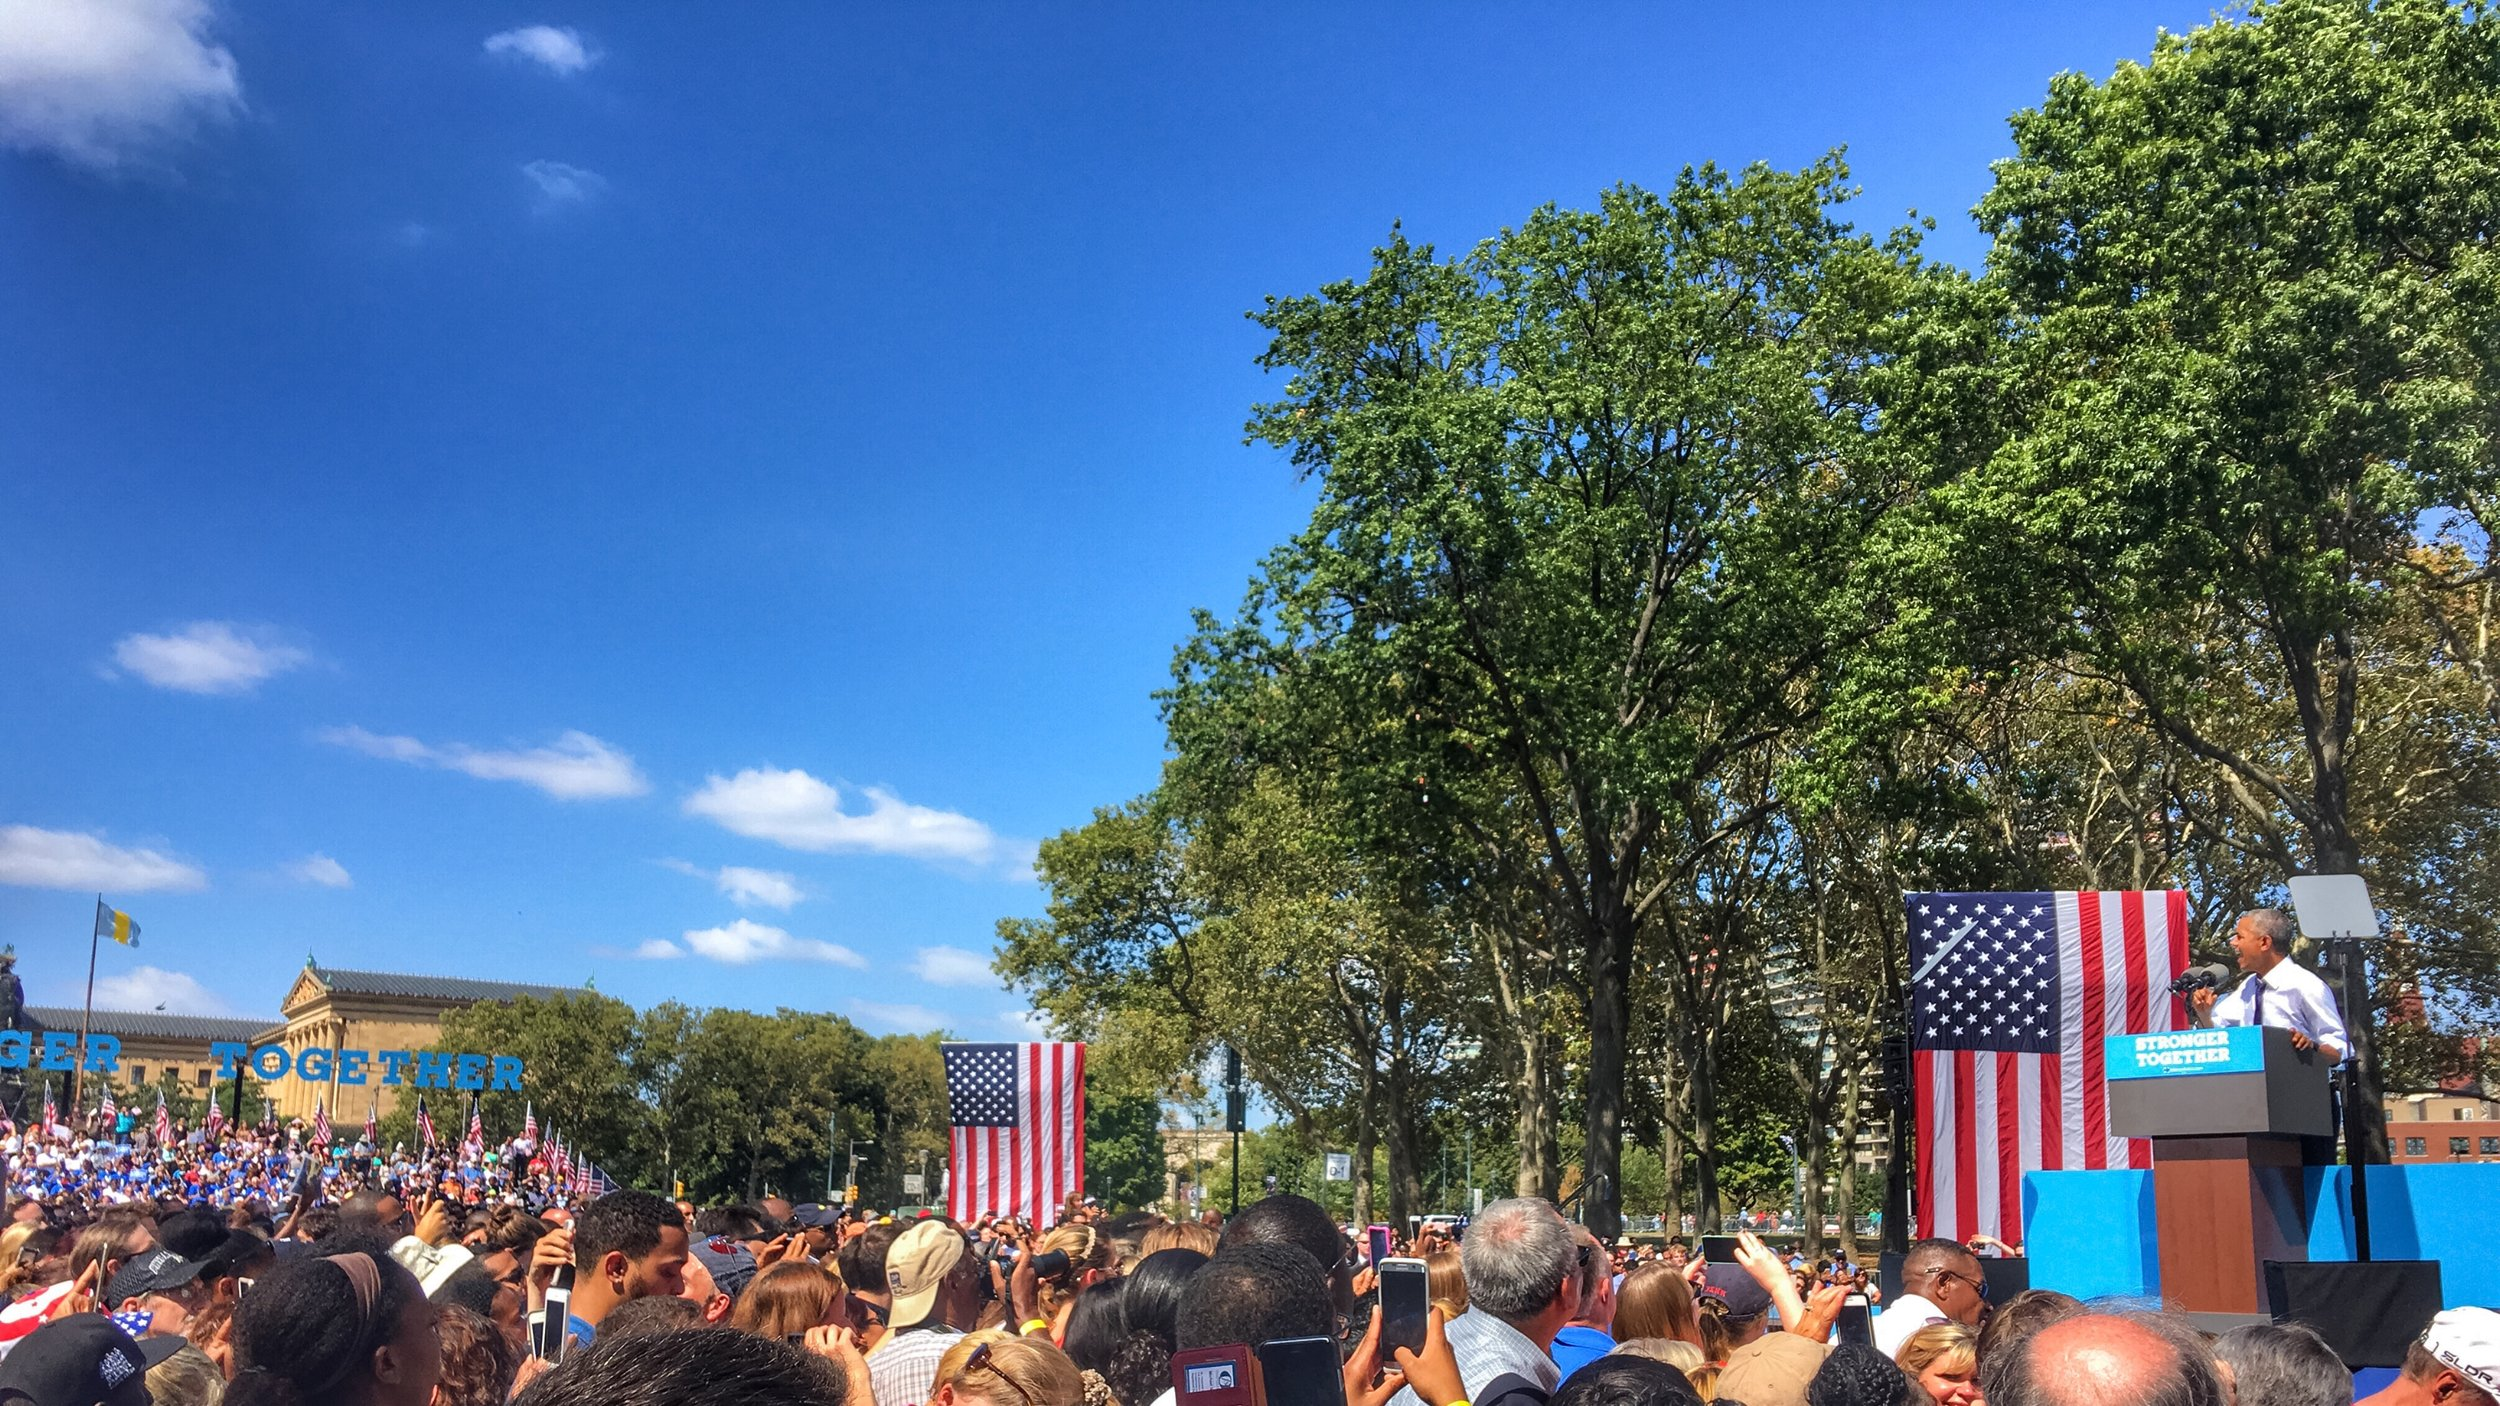 More than 6,000 people greet President Obama at Eakins Oval.